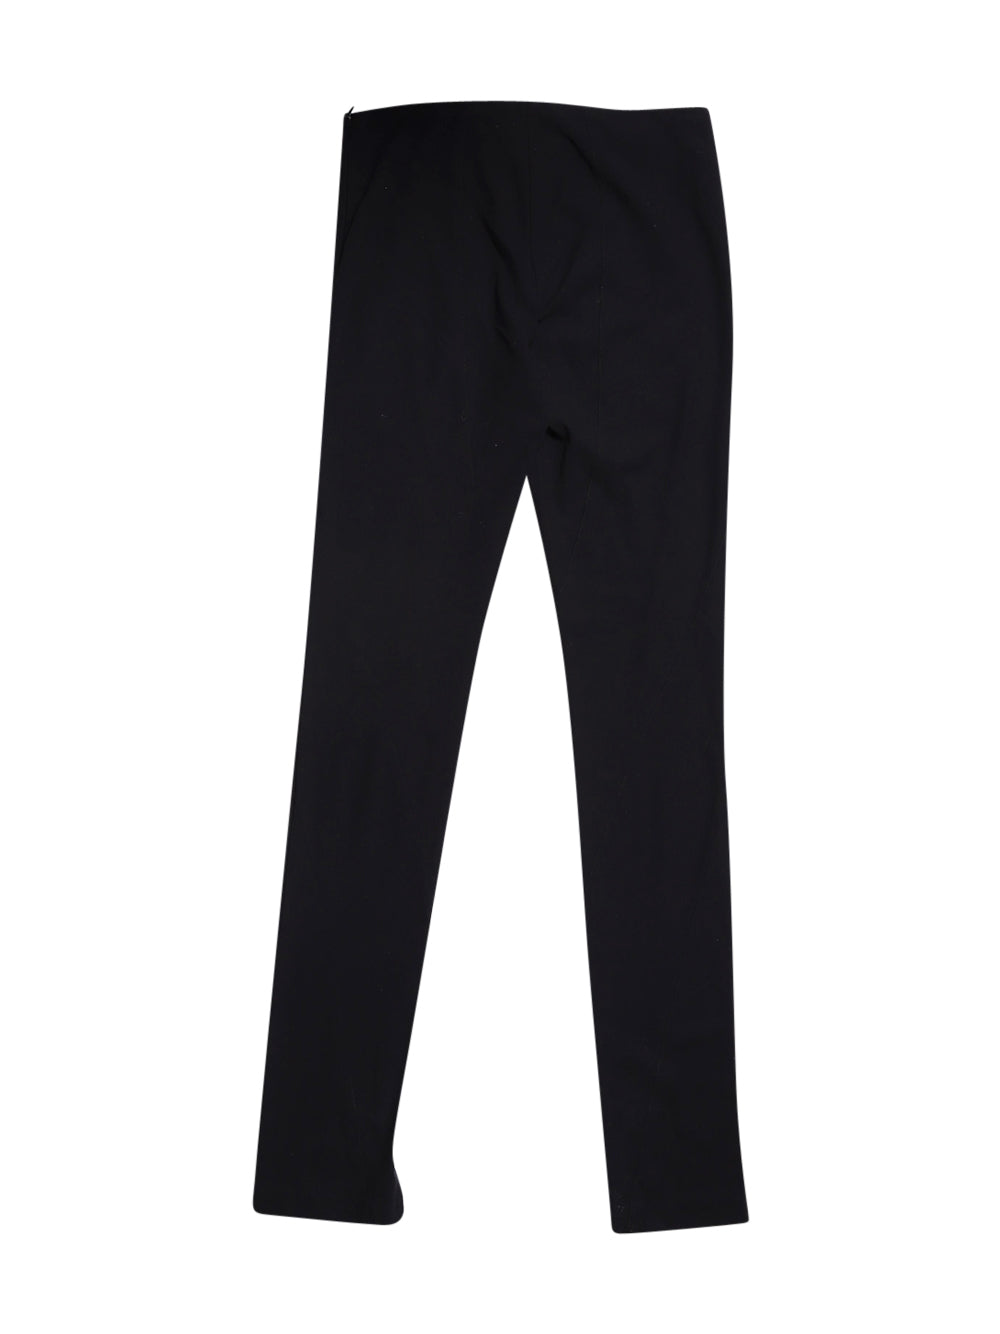 Back photo of Preloved Sisley Black Woman's trousers - size 10/M